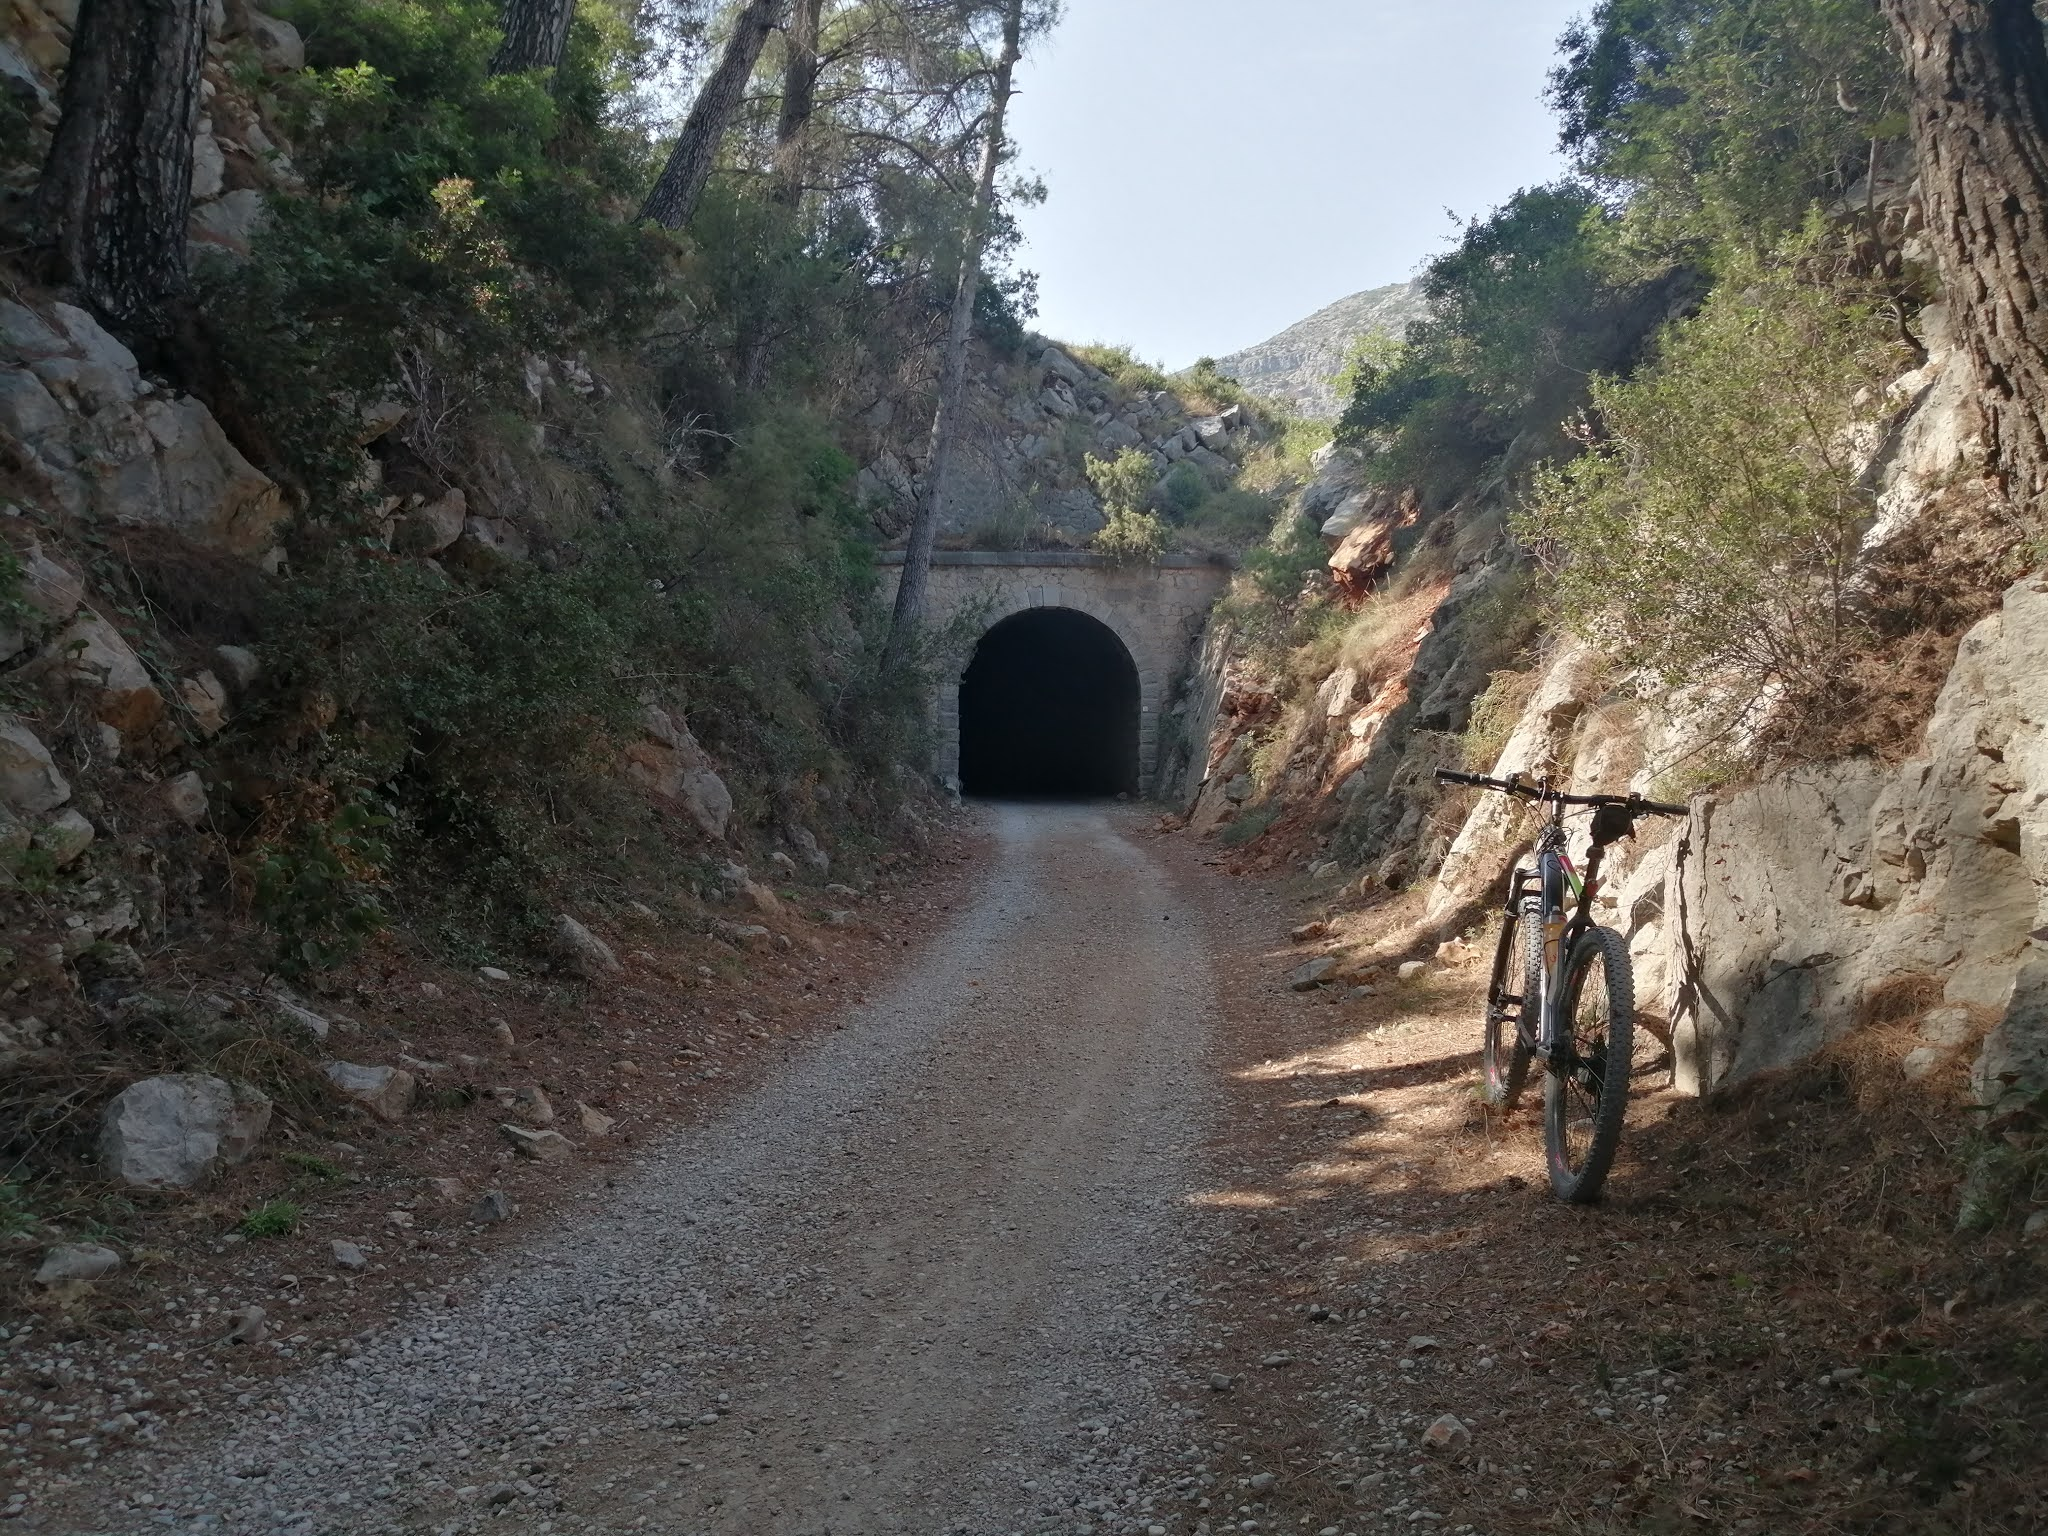 Entrance to railway tunnel on the Serpis Greenway